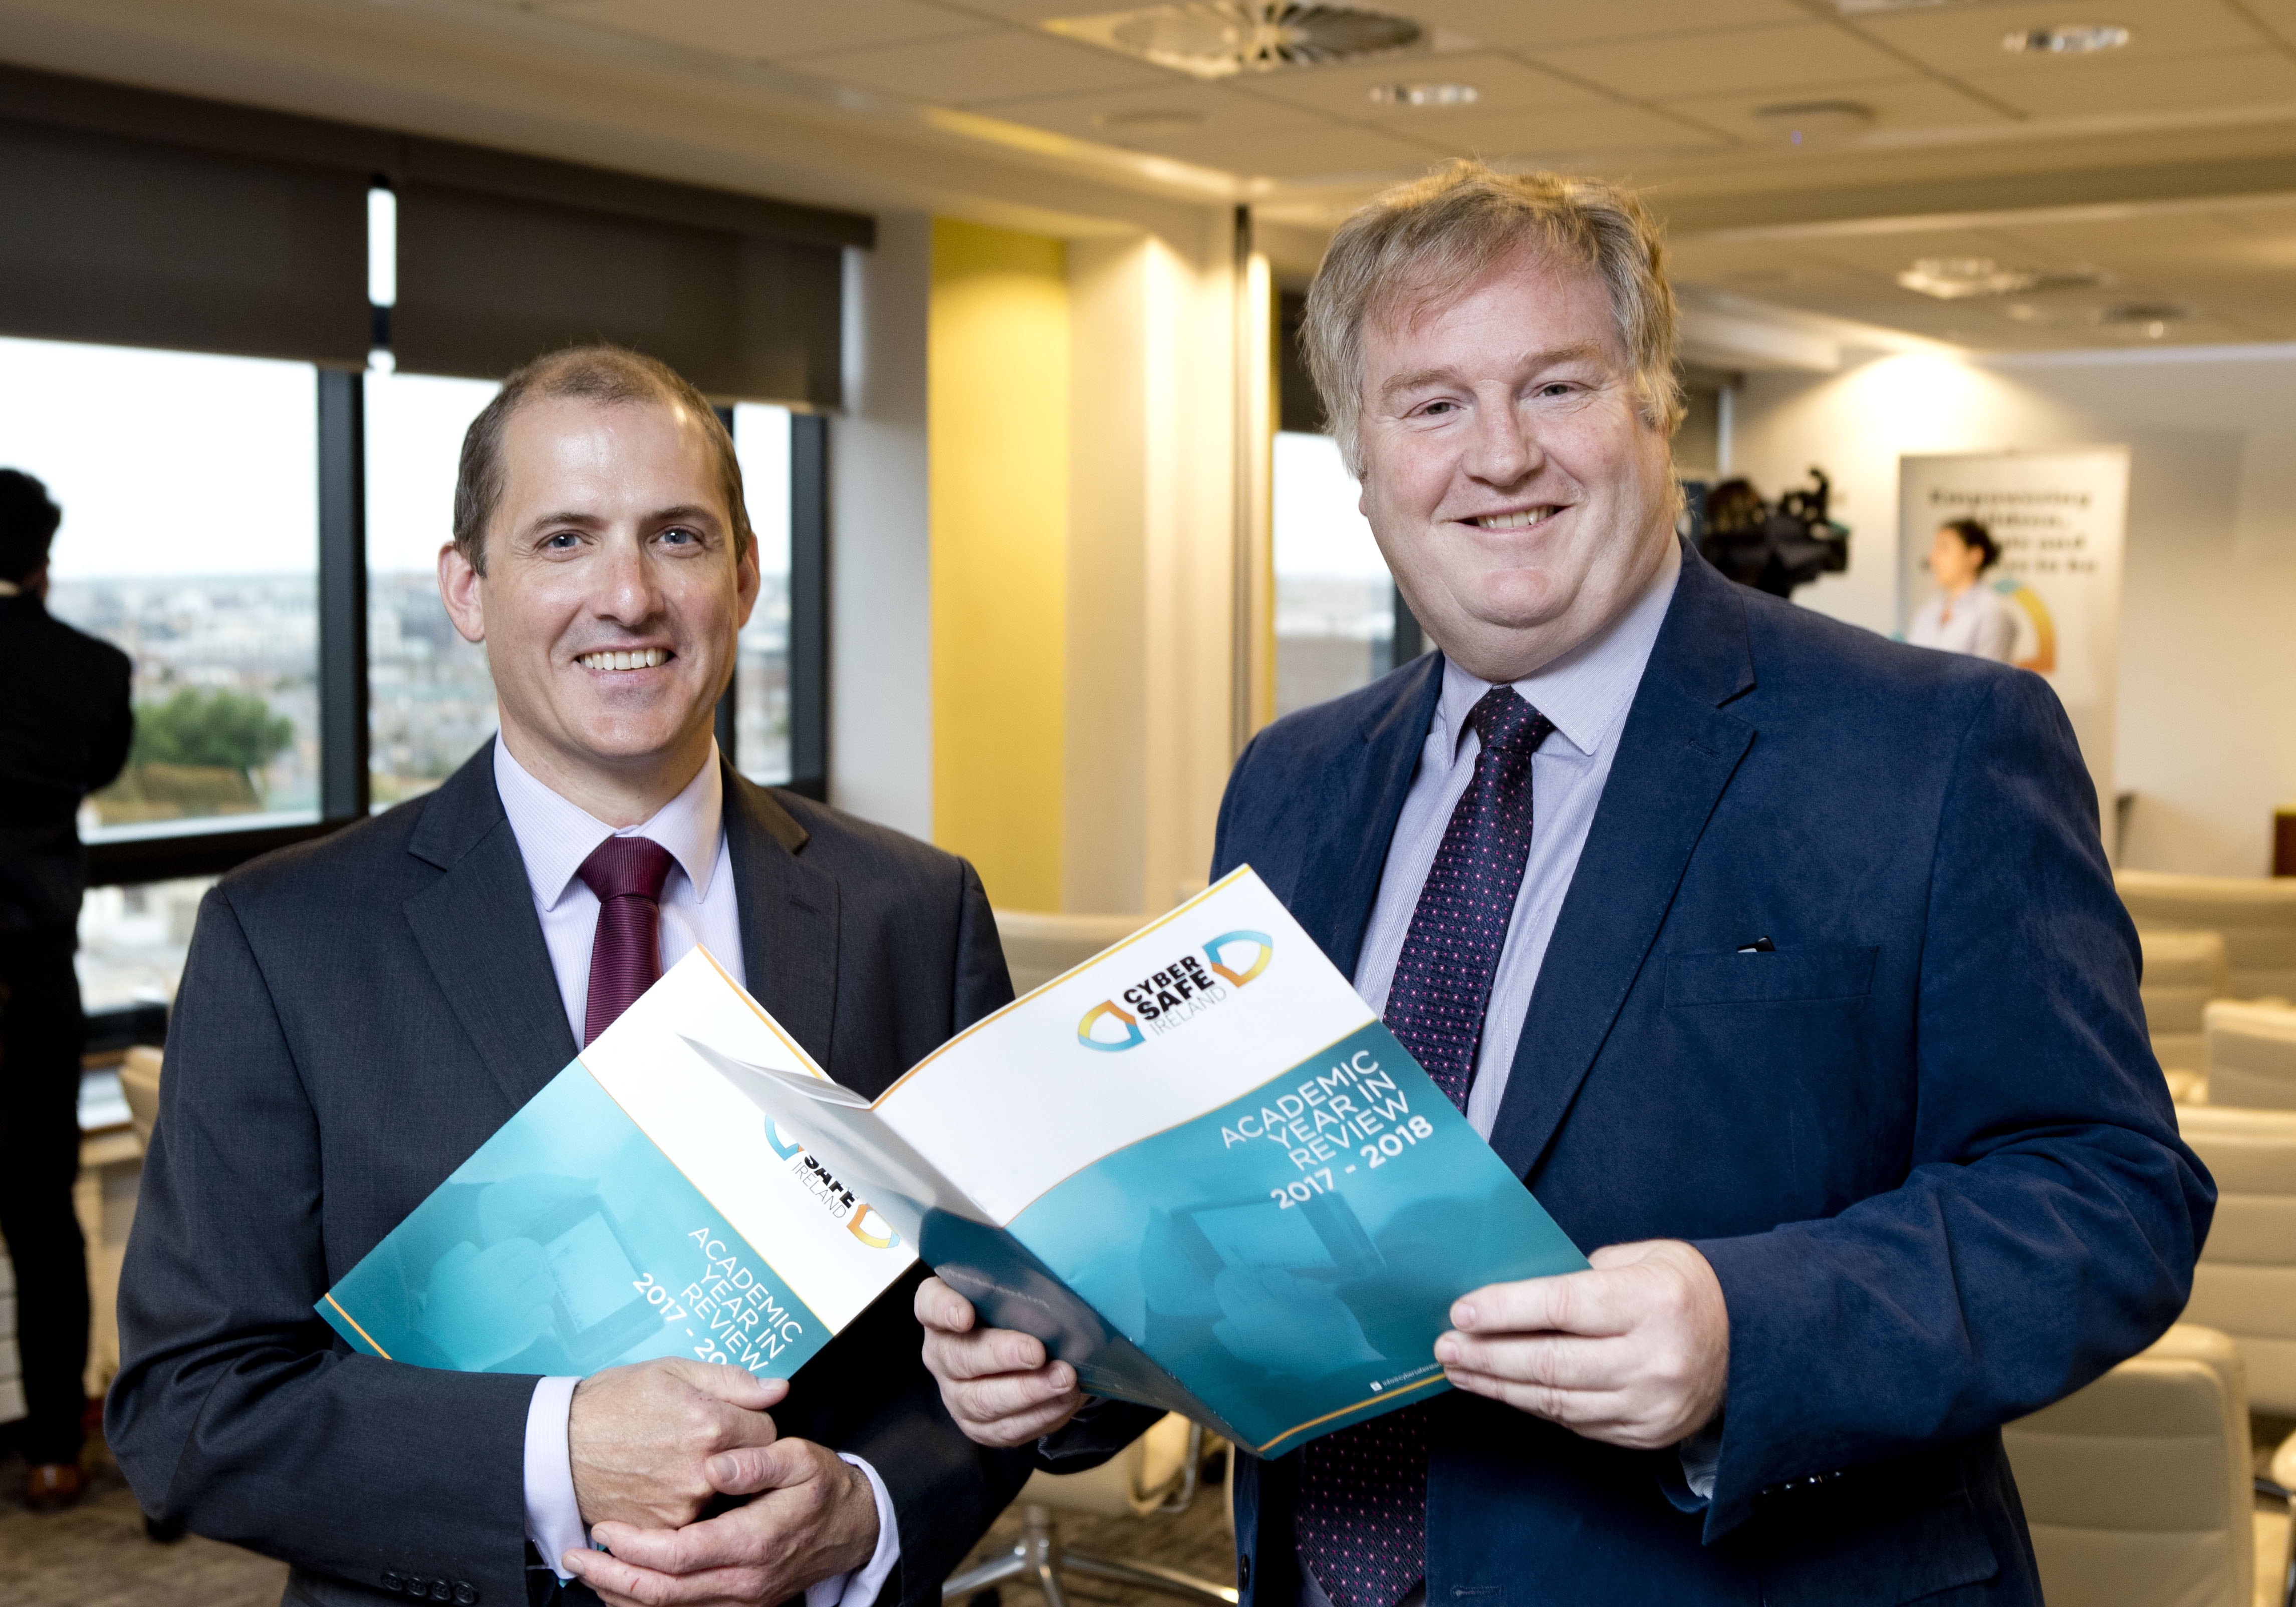 EY's Hugh Callaghan and Cormac Kelly support the launch